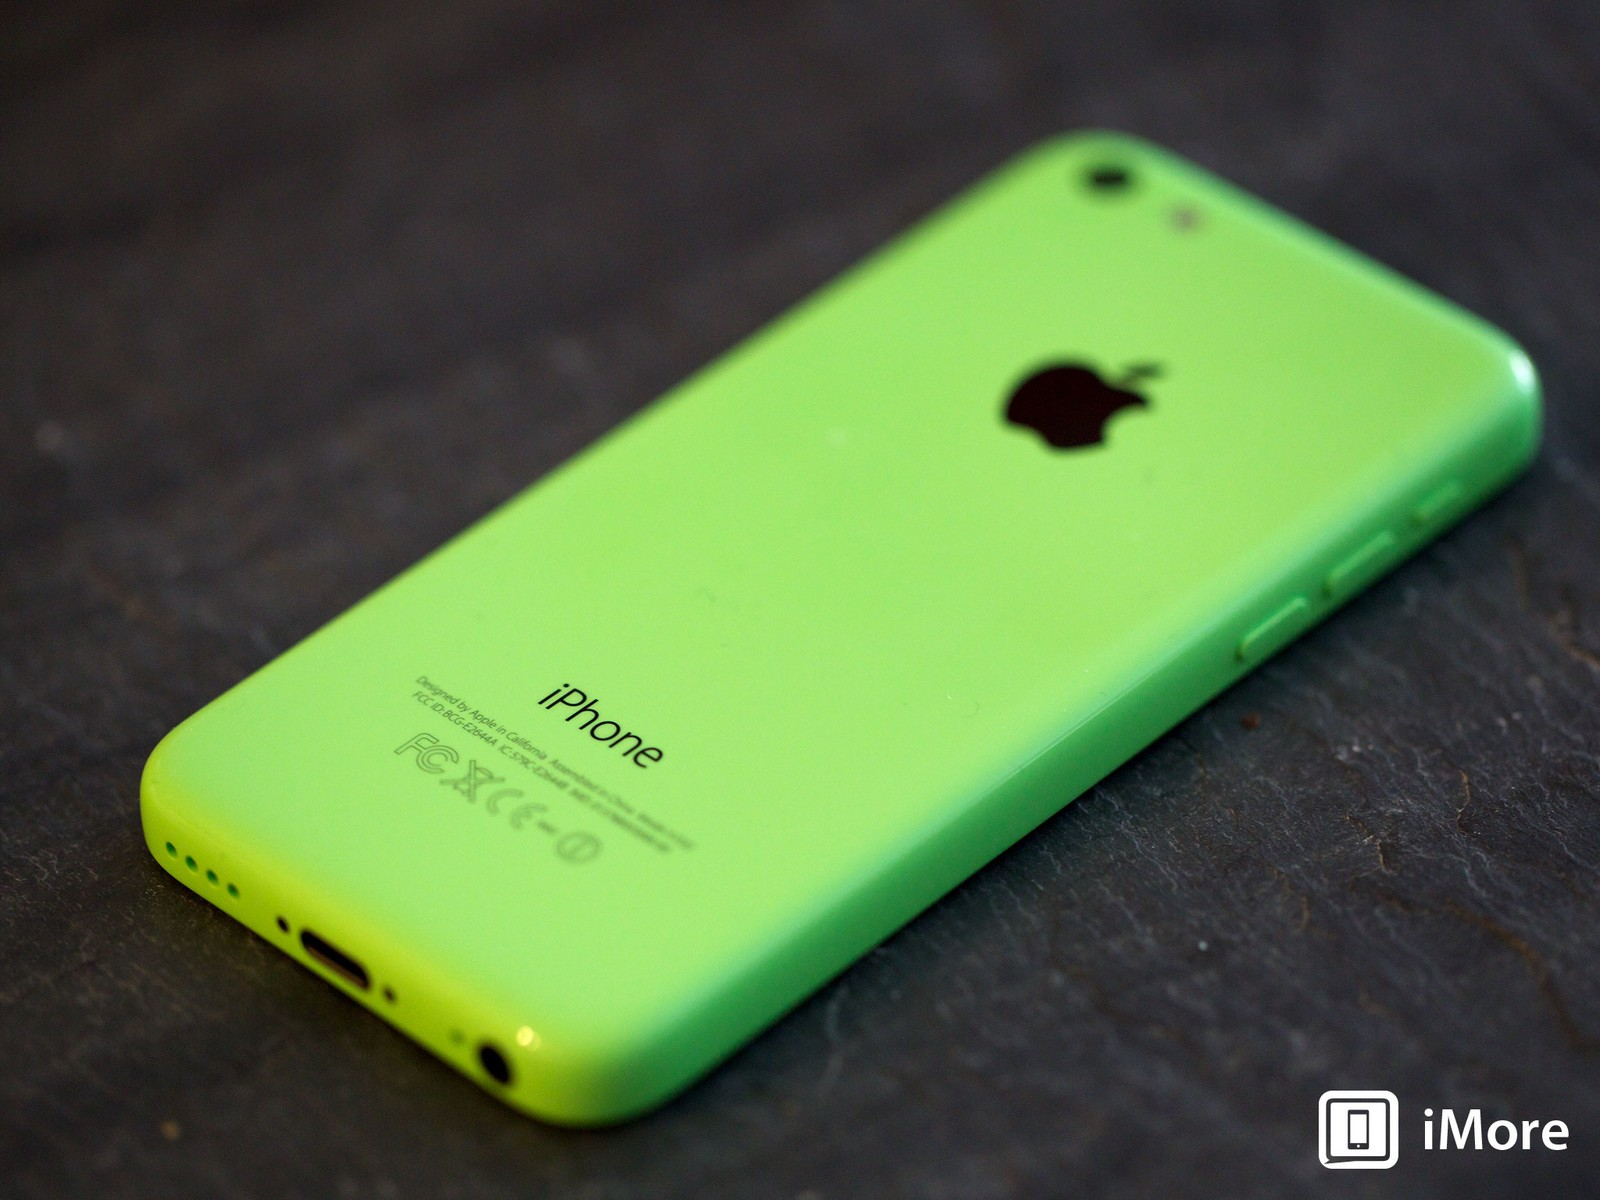 Green iPhone 5c unboxing, hardware tour, macro close-up gallery! | iMore